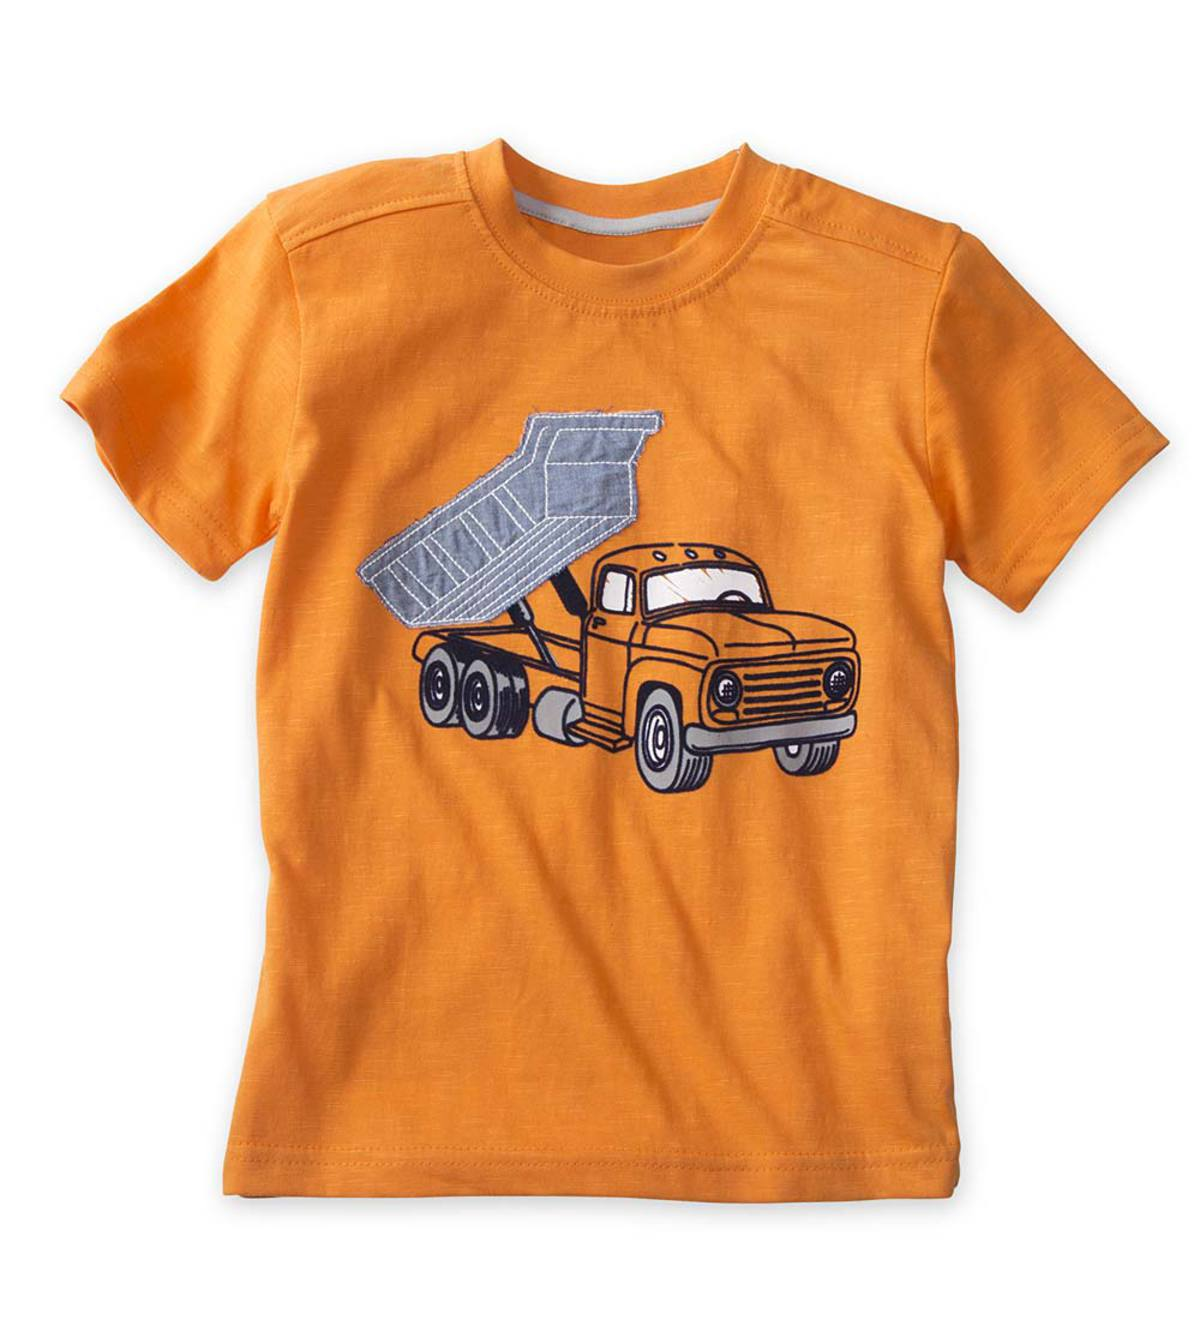 Short Sleeve Dump Truck Graphic Tee - Orange - 5/6